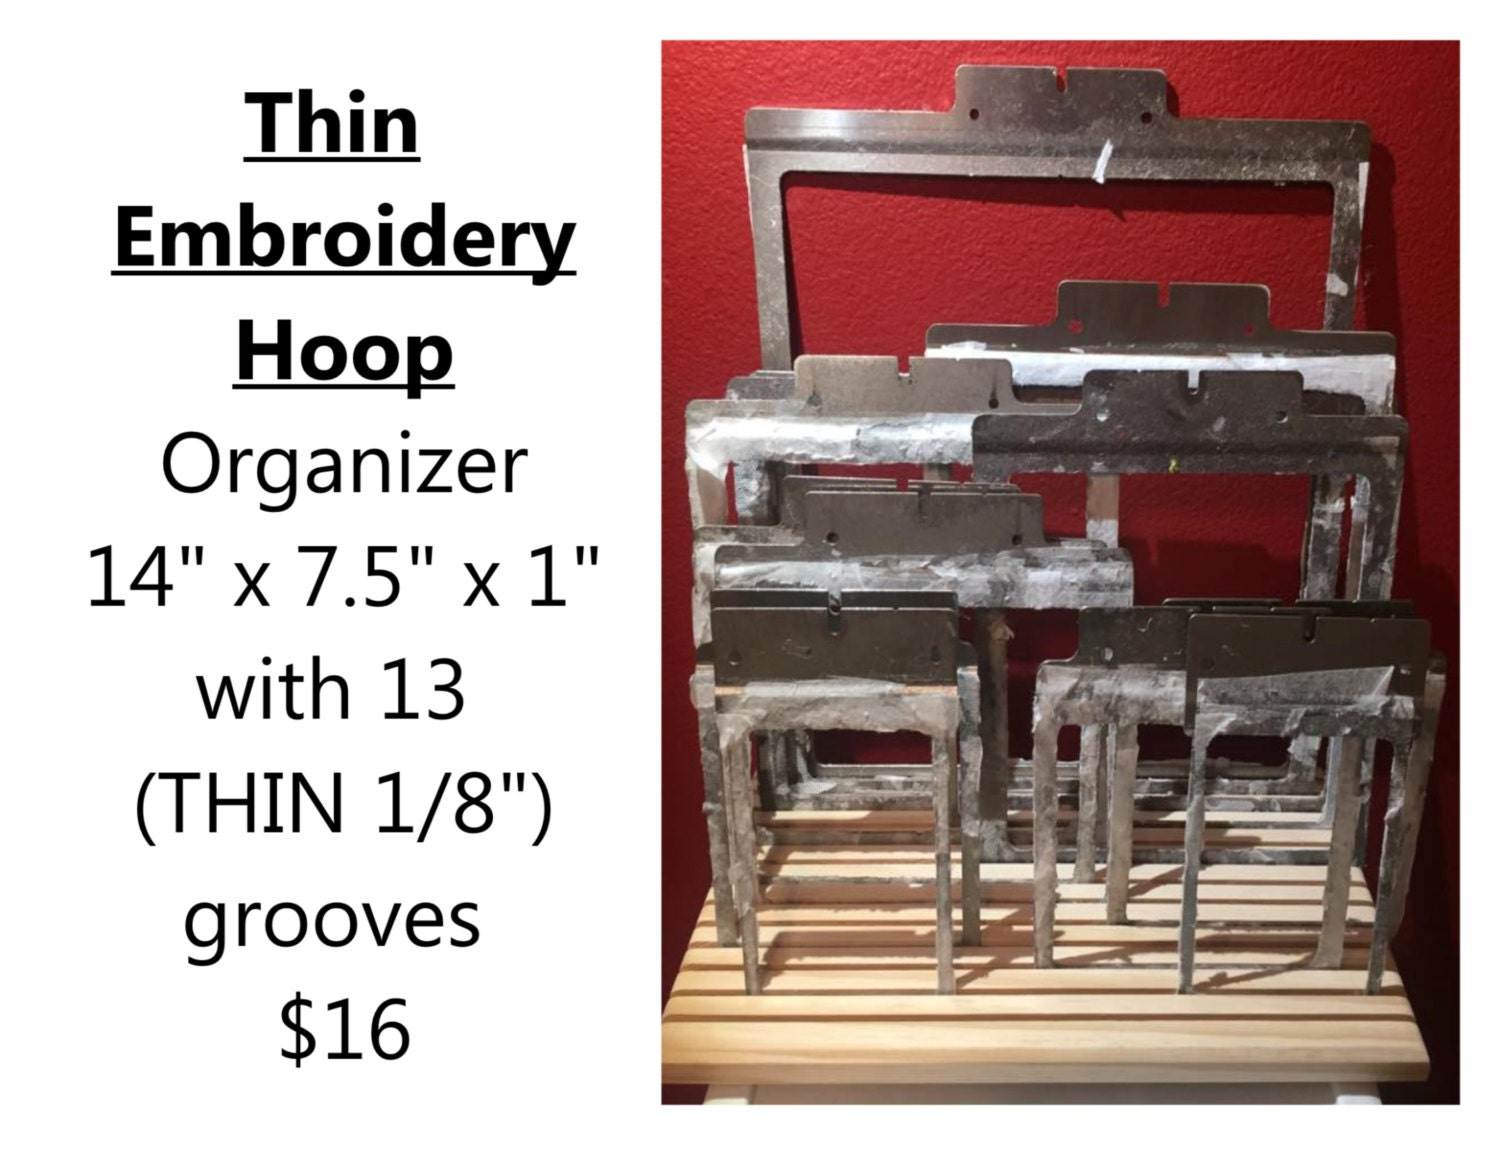 Embroidery hoop organizer thin grooves by tomswoodshop